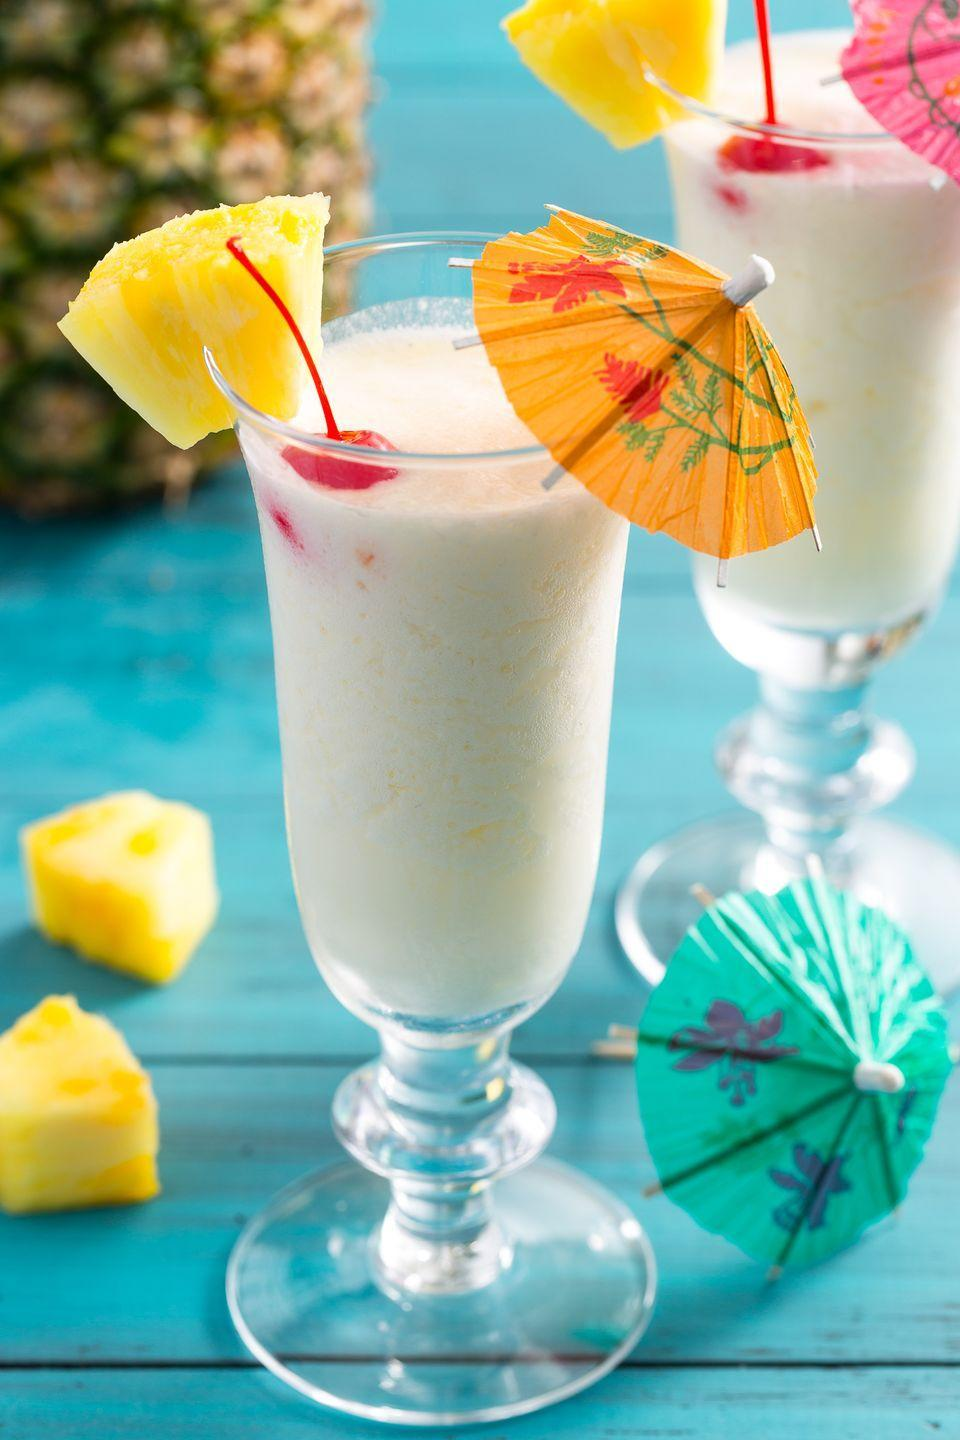 """<p>Is it even a piña colada without an umbrella in it?</p><p>Get the recipe from <a href=""""https://www.delish.com/cooking/recipe-ideas/recipes/a4262/pina-colada-drinks-cocktails/"""" rel=""""nofollow noopener"""" target=""""_blank"""" data-ylk=""""slk:Delish"""" class=""""link rapid-noclick-resp"""">Delish</a>.<br></p>"""